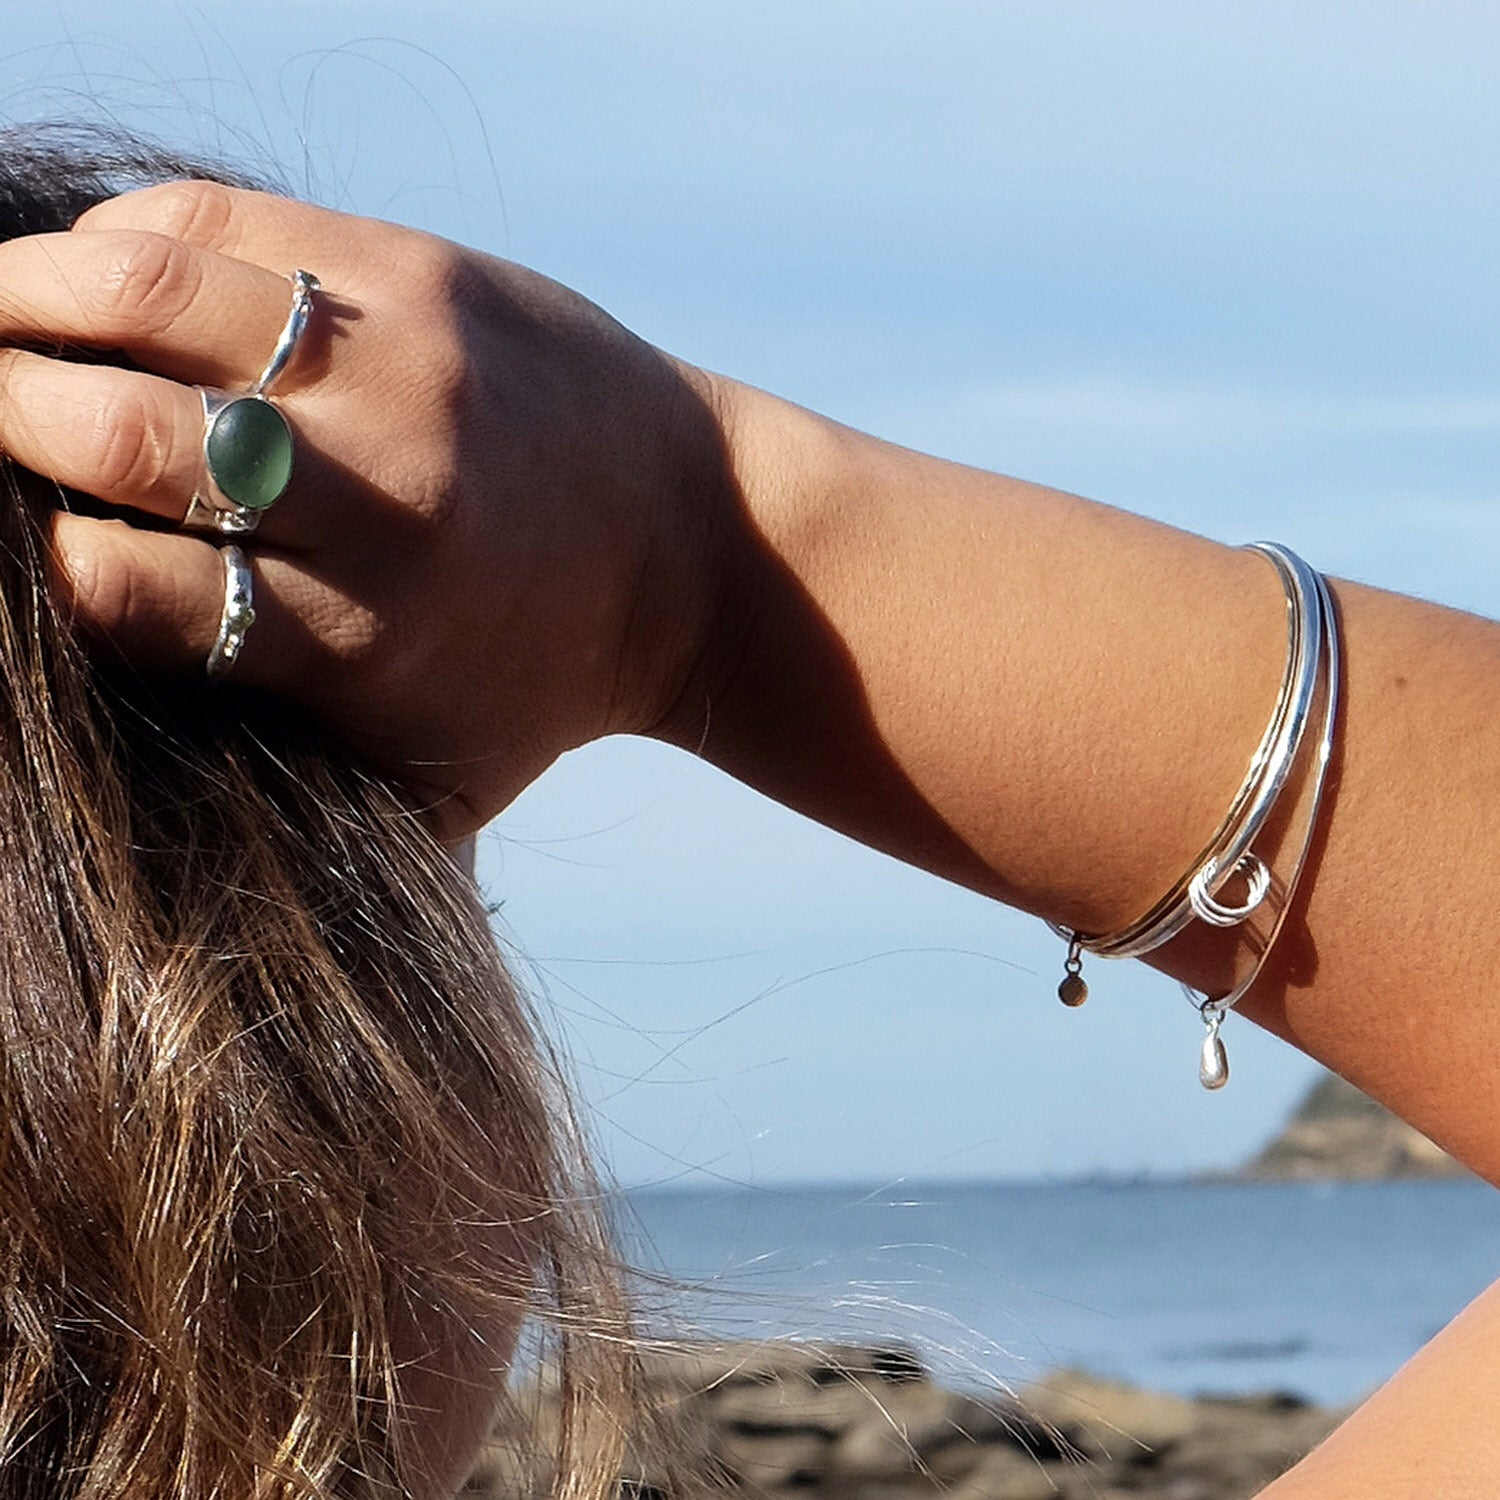 kriket Broadhurst seaglass jewellery